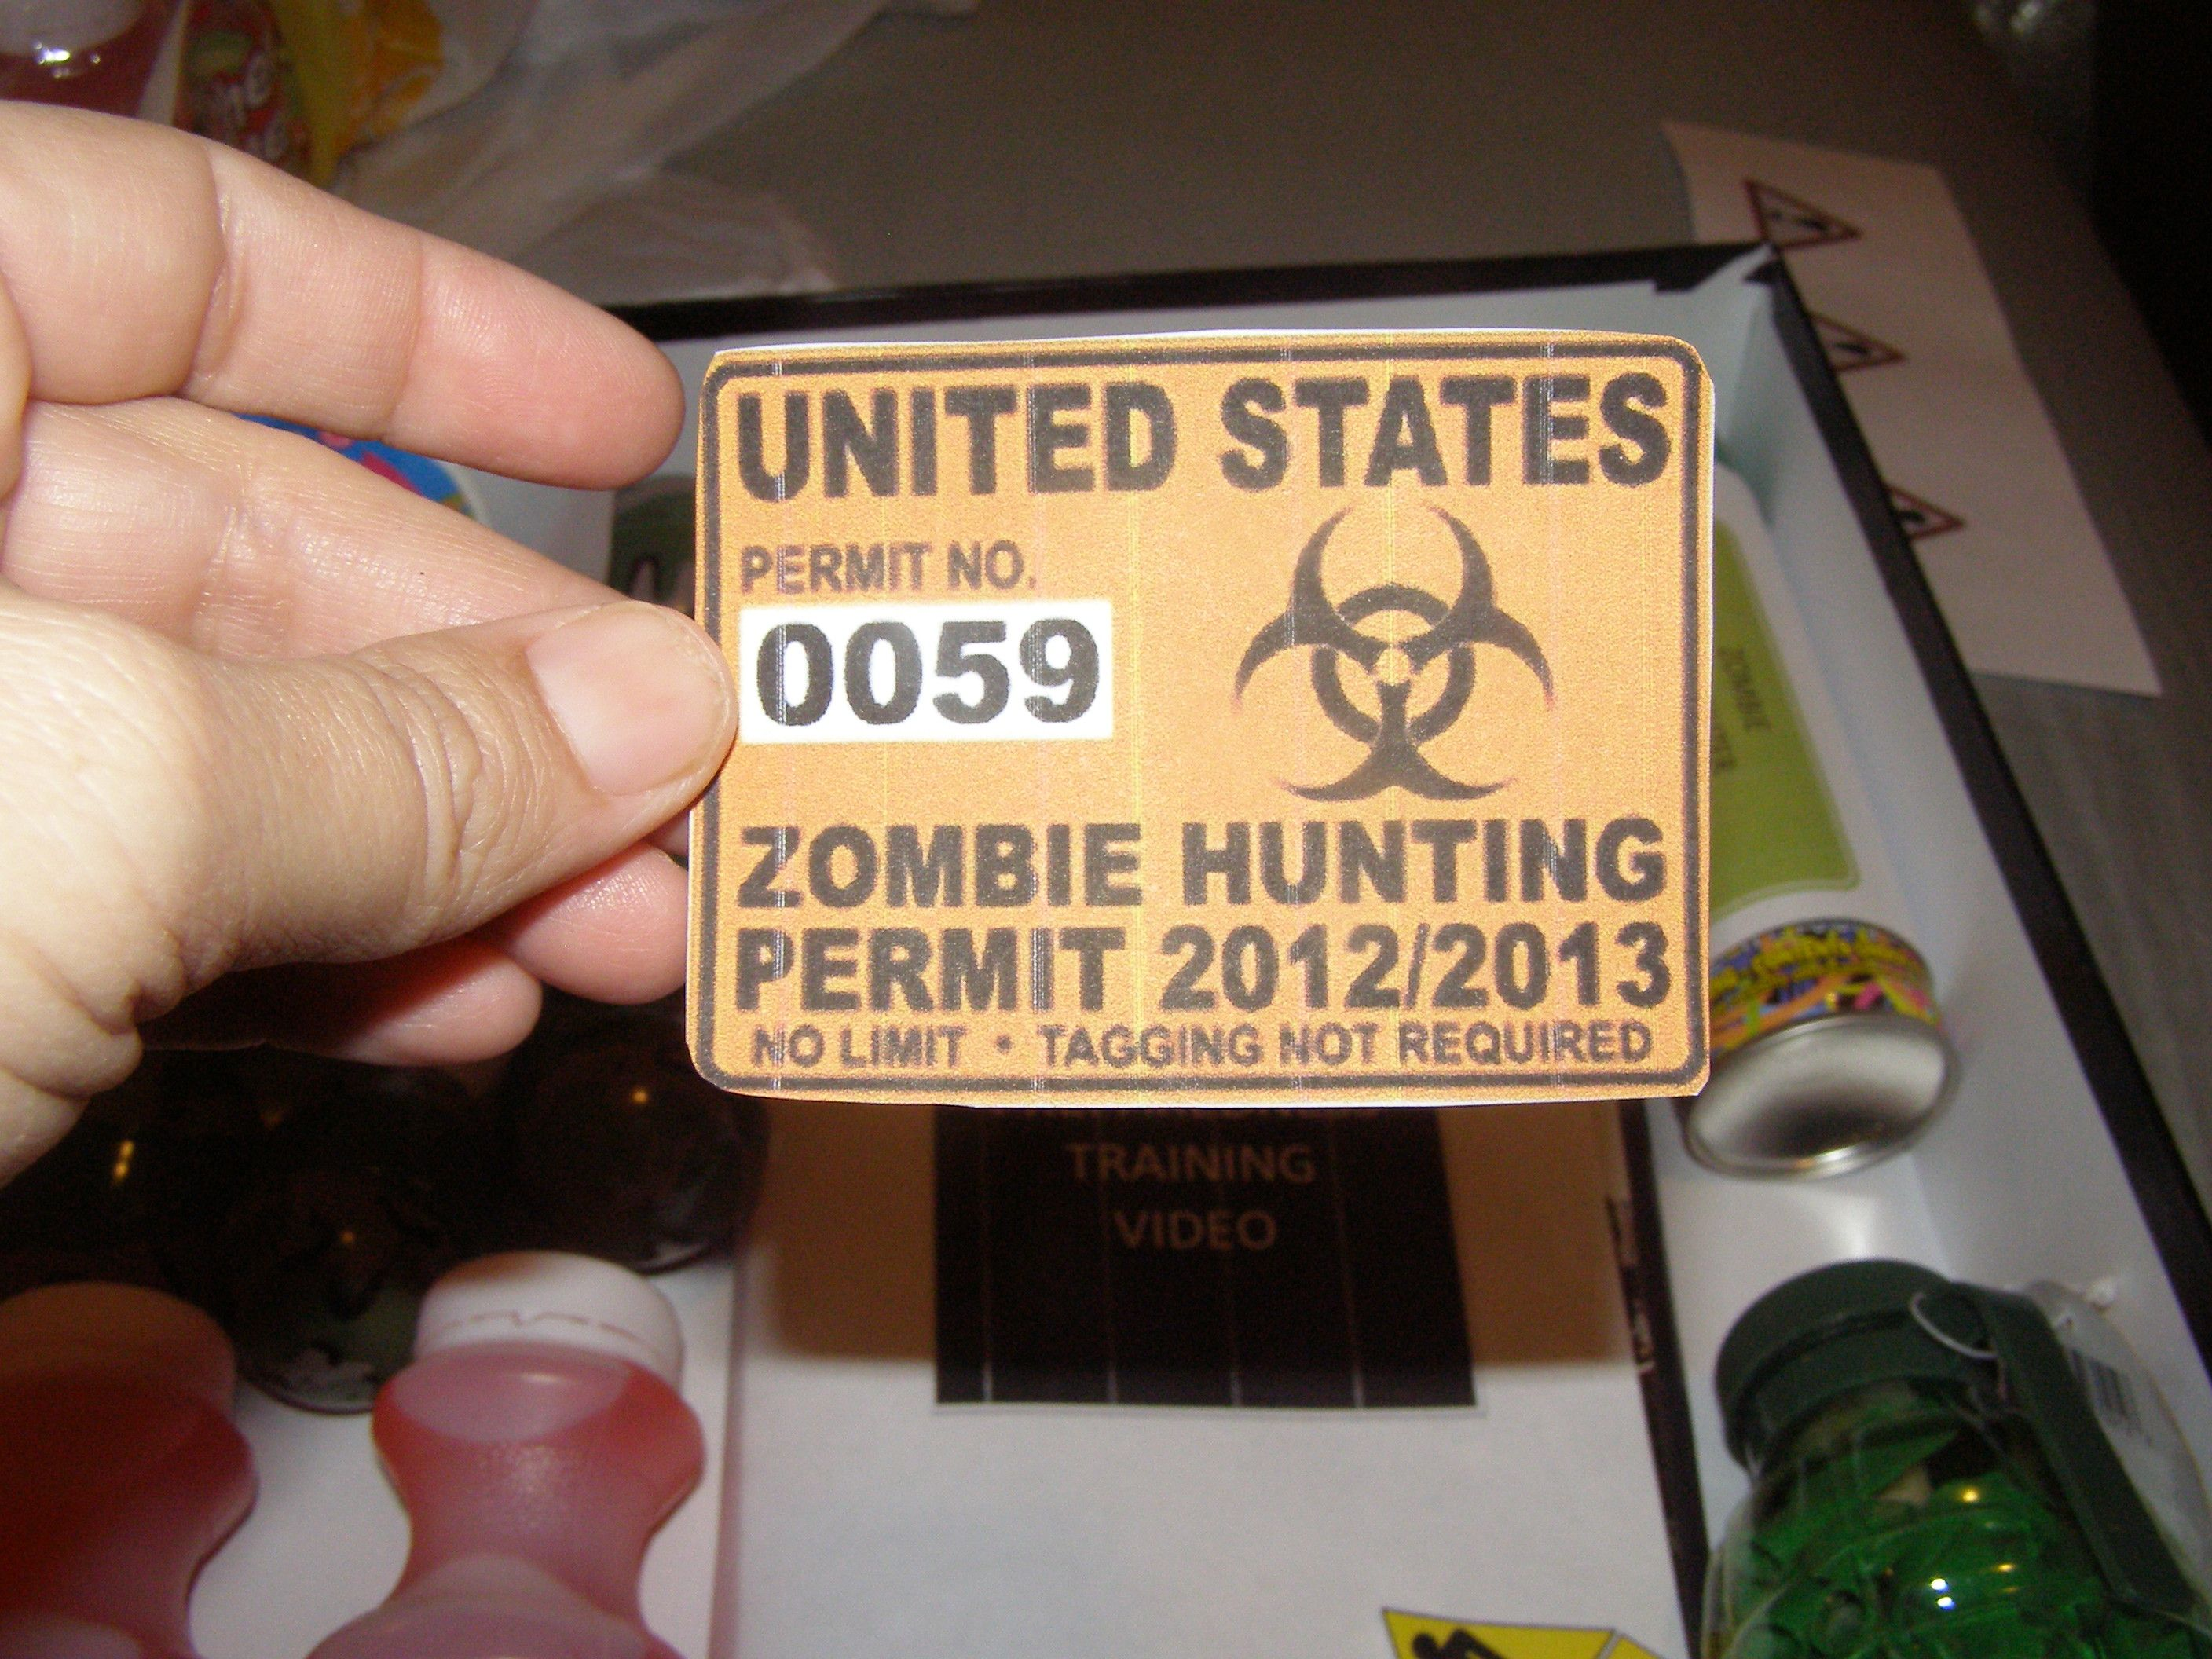 Zombie Hunting Permit - found image on internet and printed